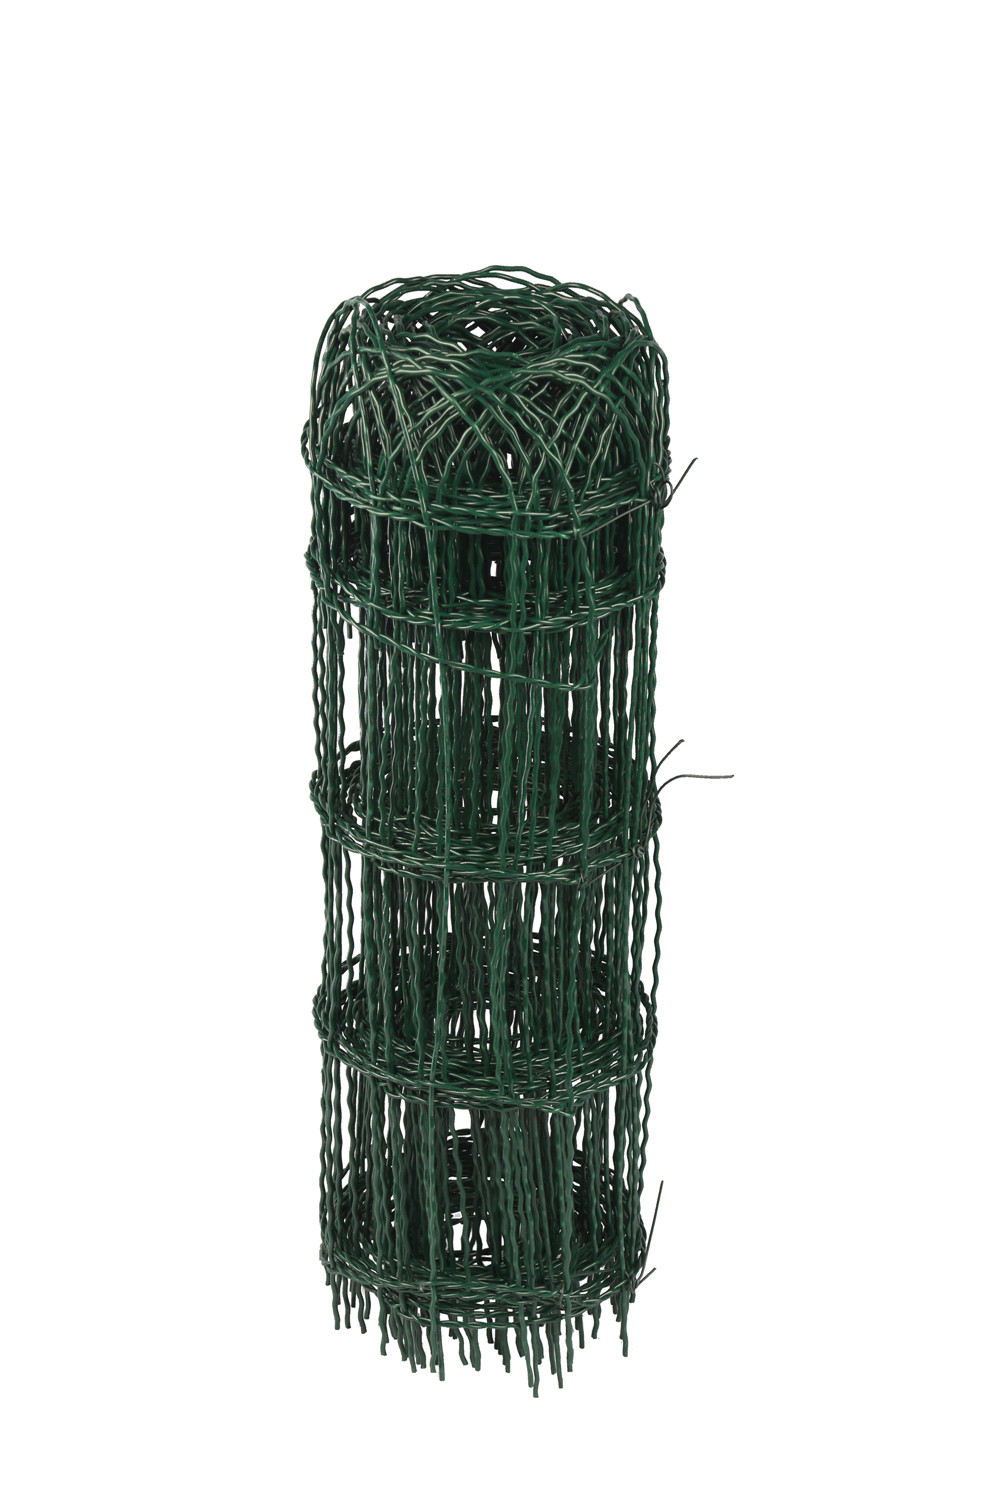 Plastic Coated Galvanized Wire Garden  Mesh